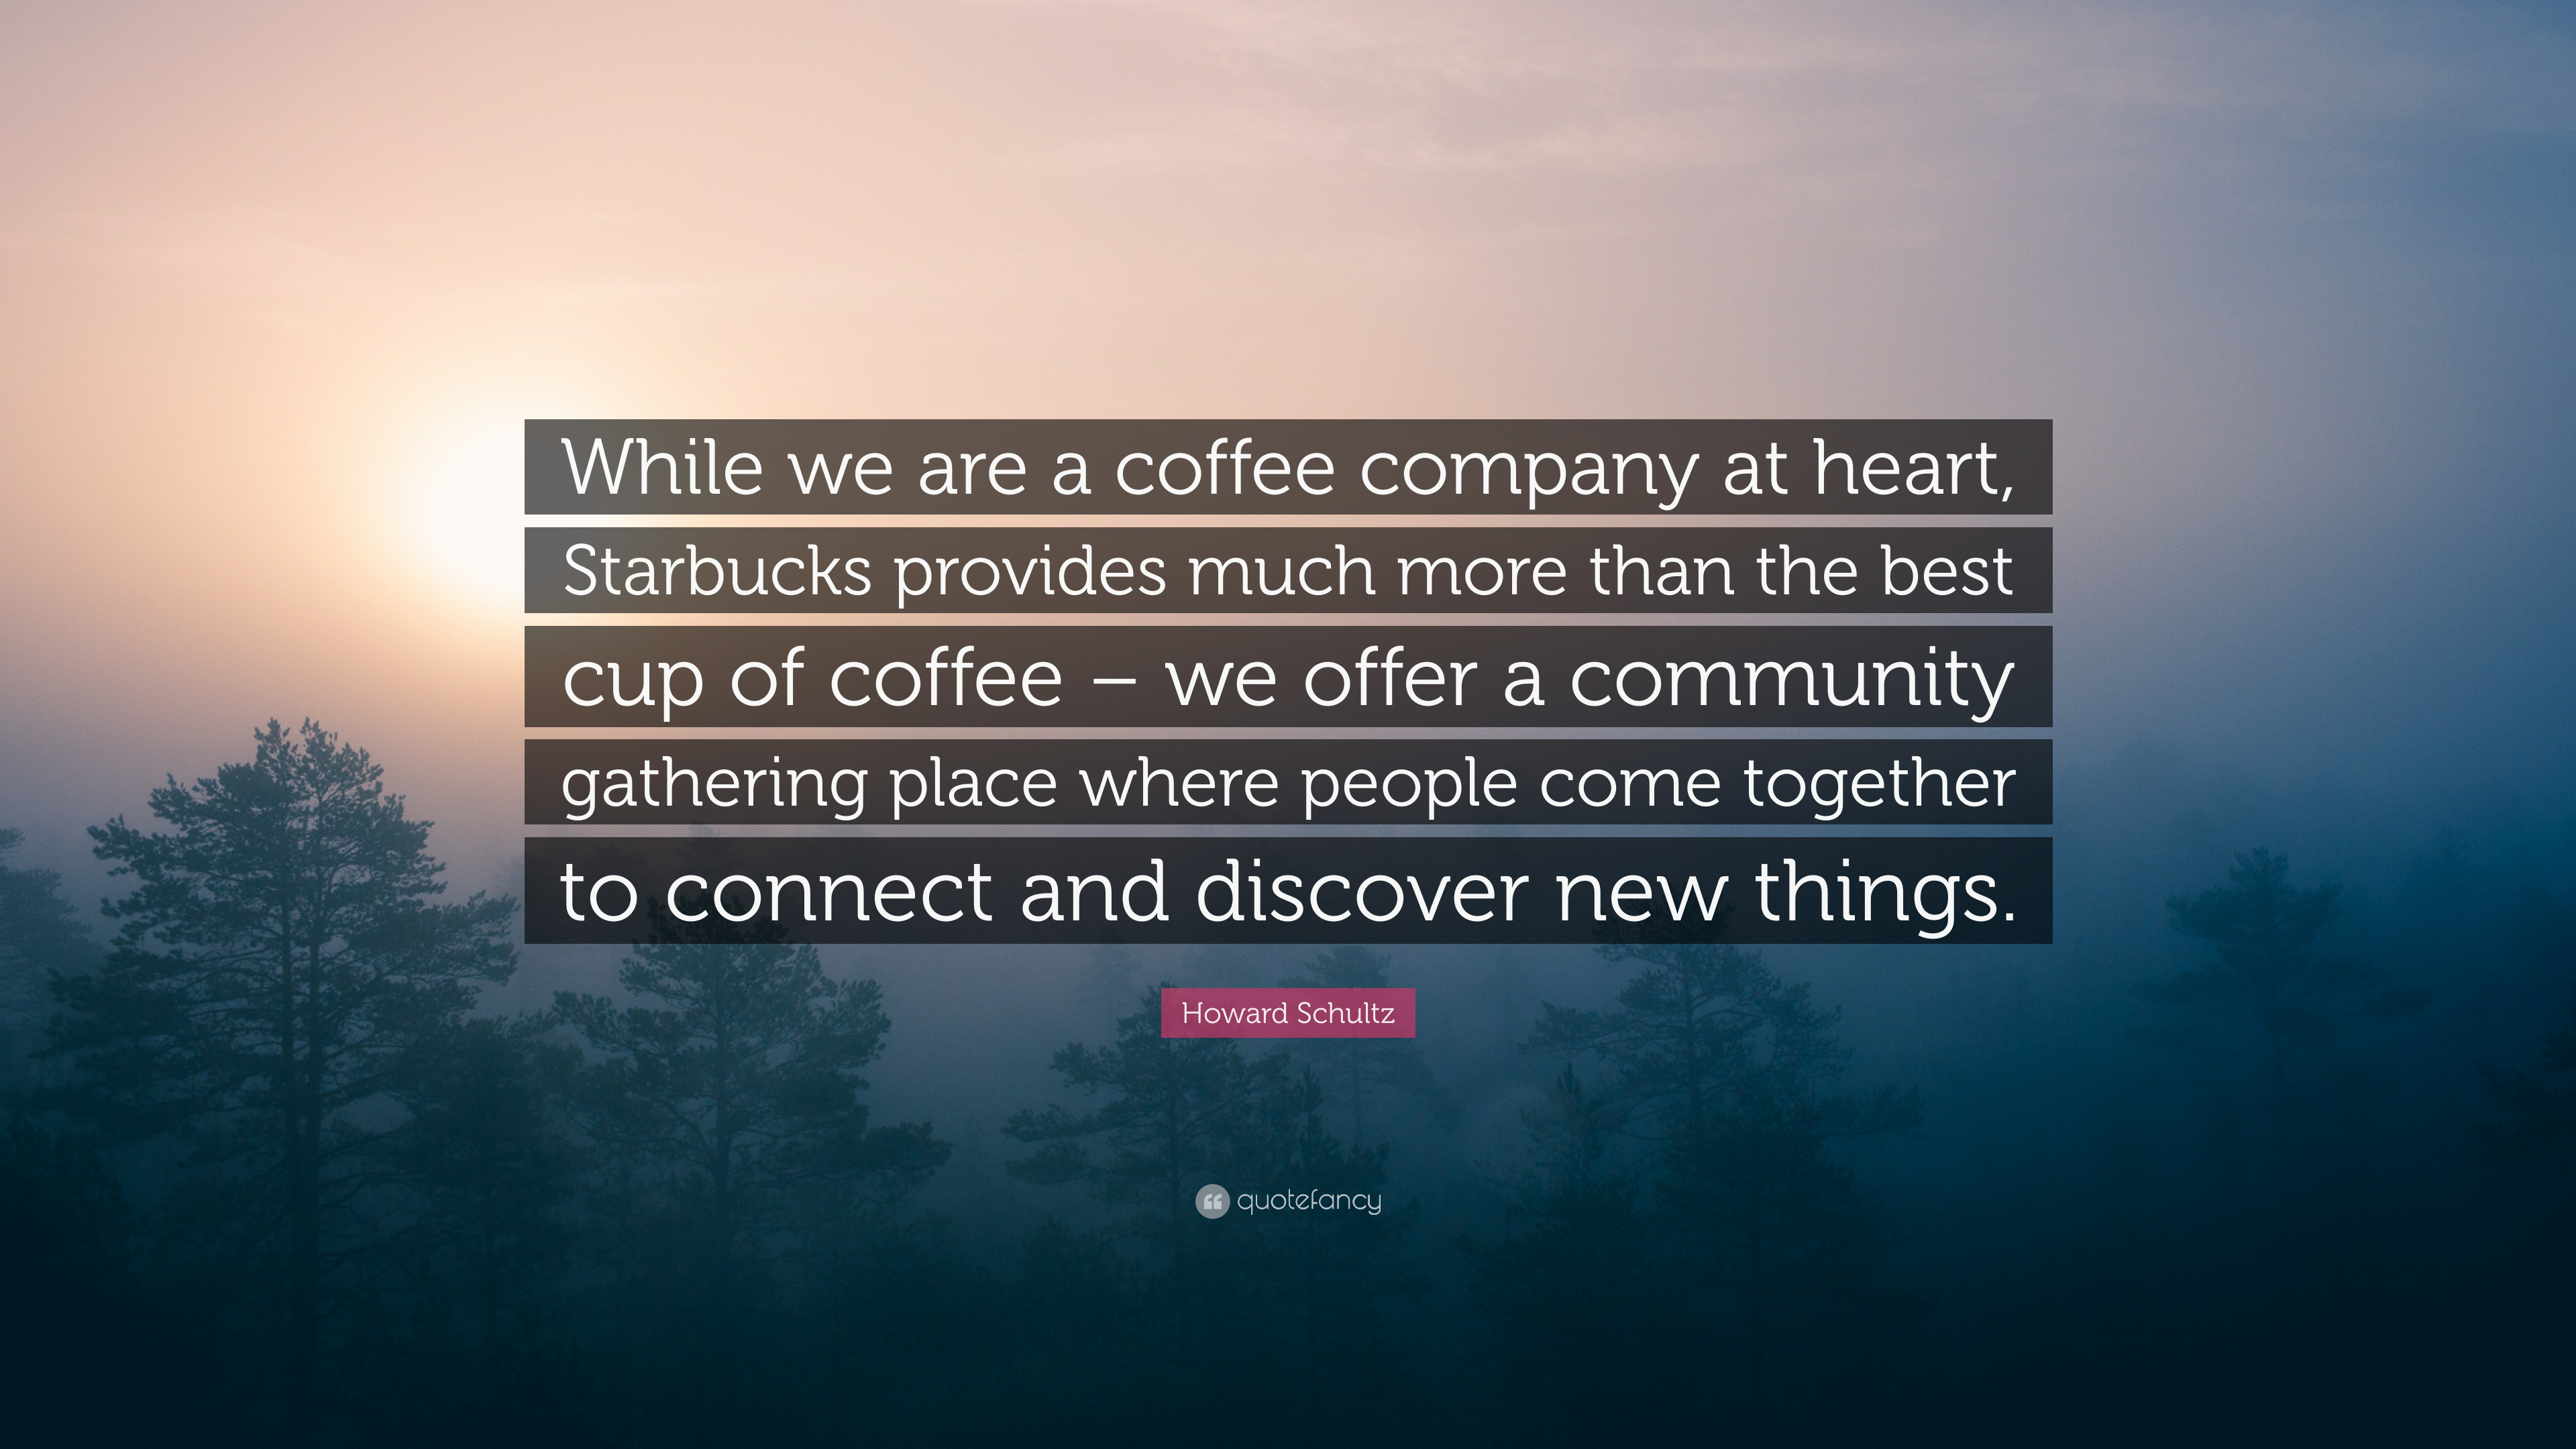 Howard Schultz Quote While We Are A Coffee Company At Heart Starbucks Provides Much More Than The Best Cup Of Coffee We Offer A Community 7 Wallpapers Quotefancy